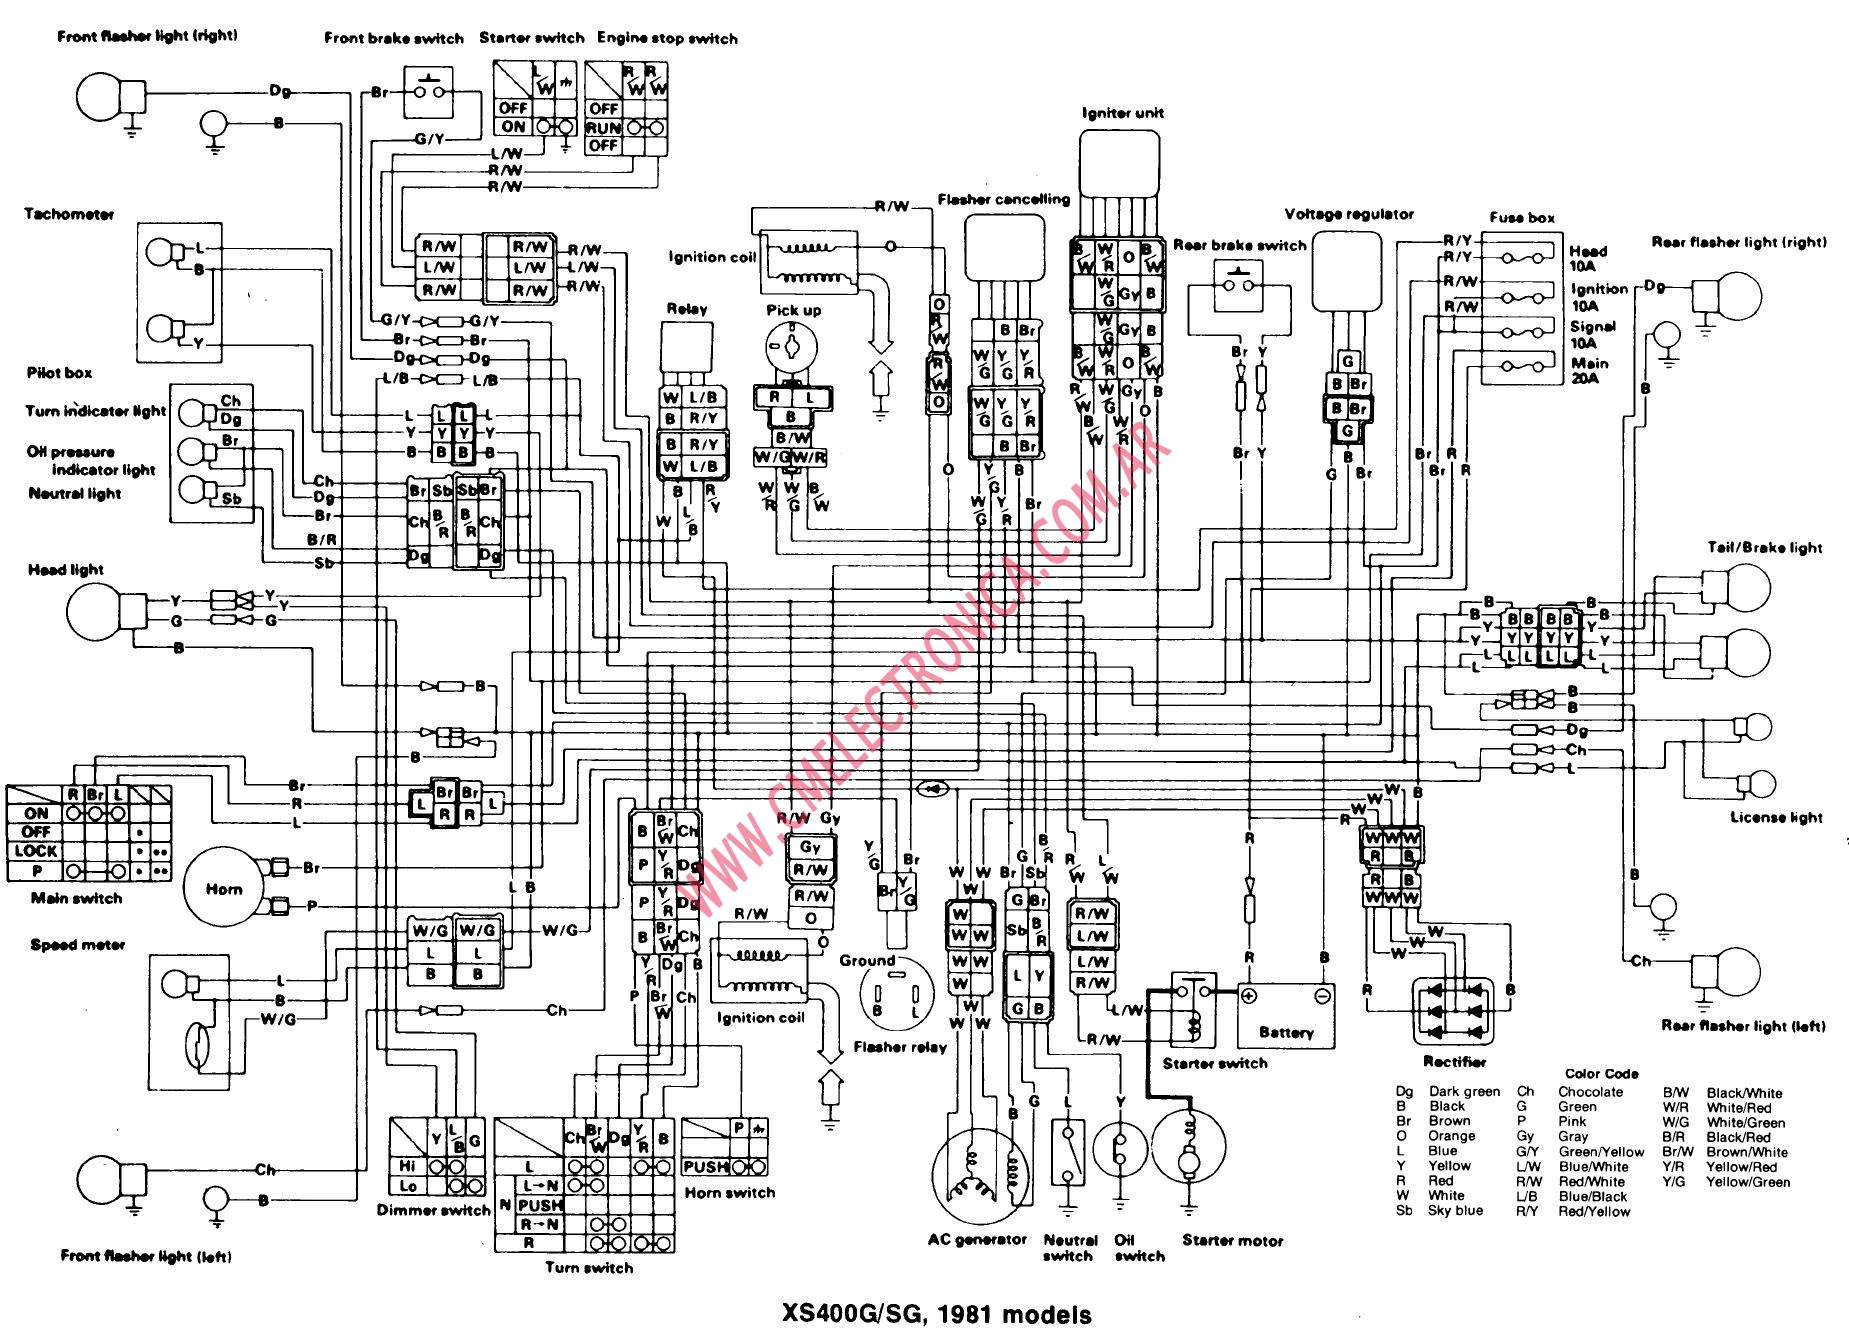 1981 xs400 wiring diagram   25 wiring diagram images